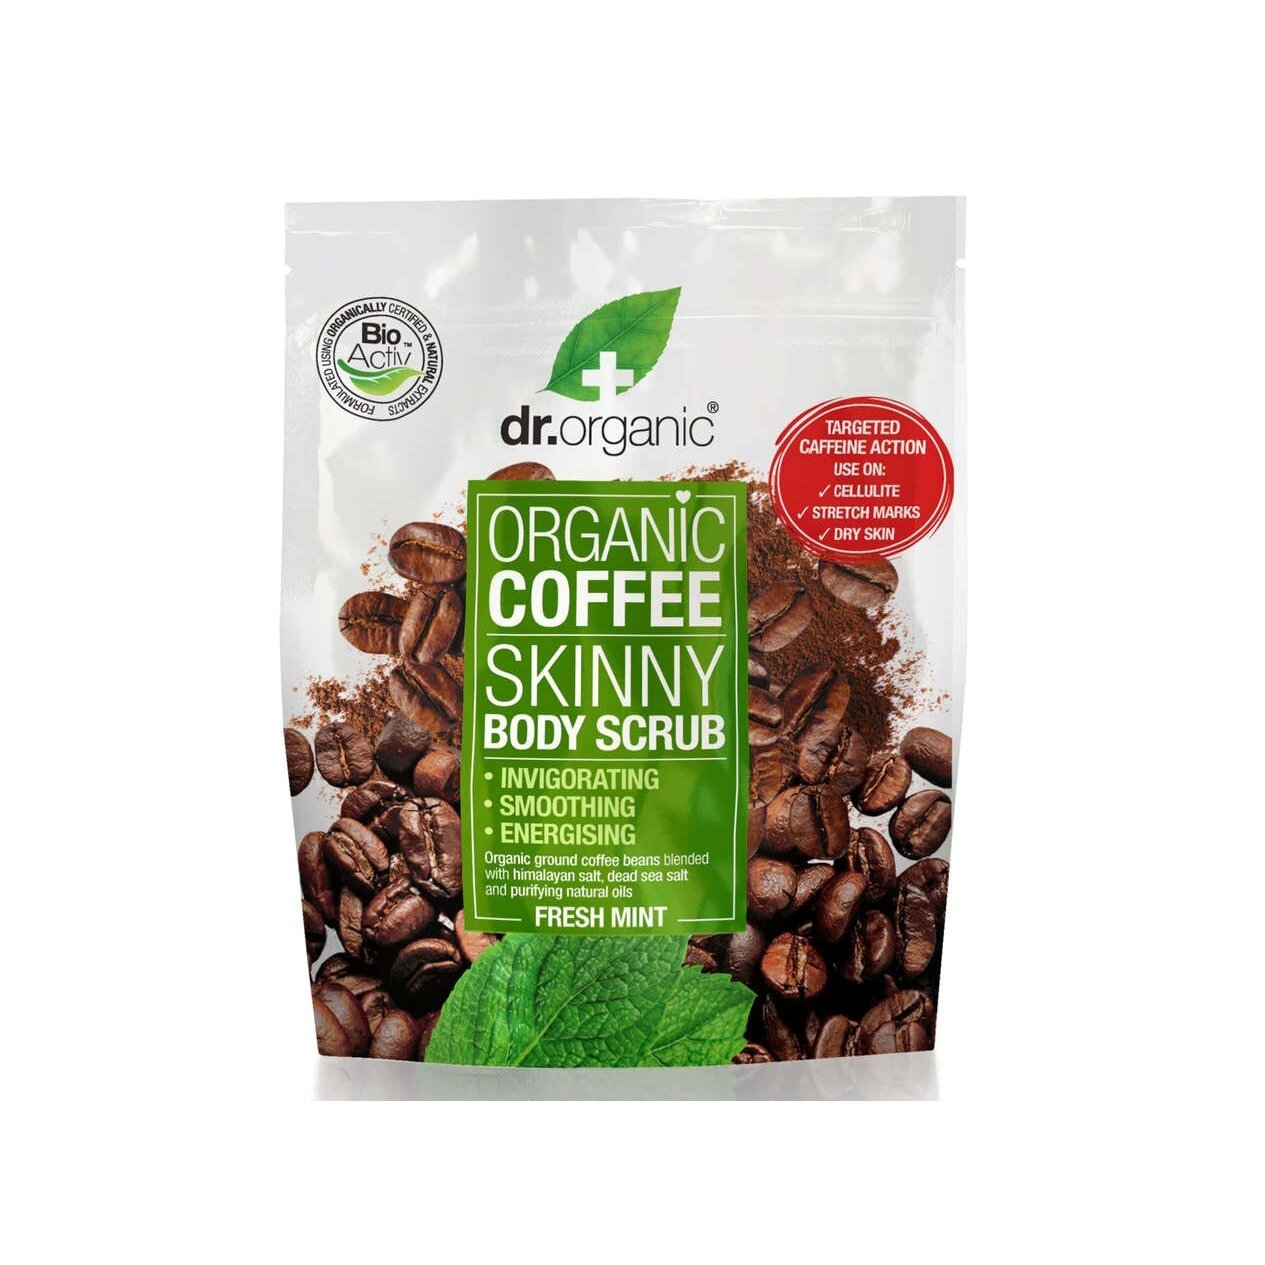 Dr. Organic Coffee Skinny Body Scrub with Fresh Mint Απολεπιστικό Σώματος 200gr